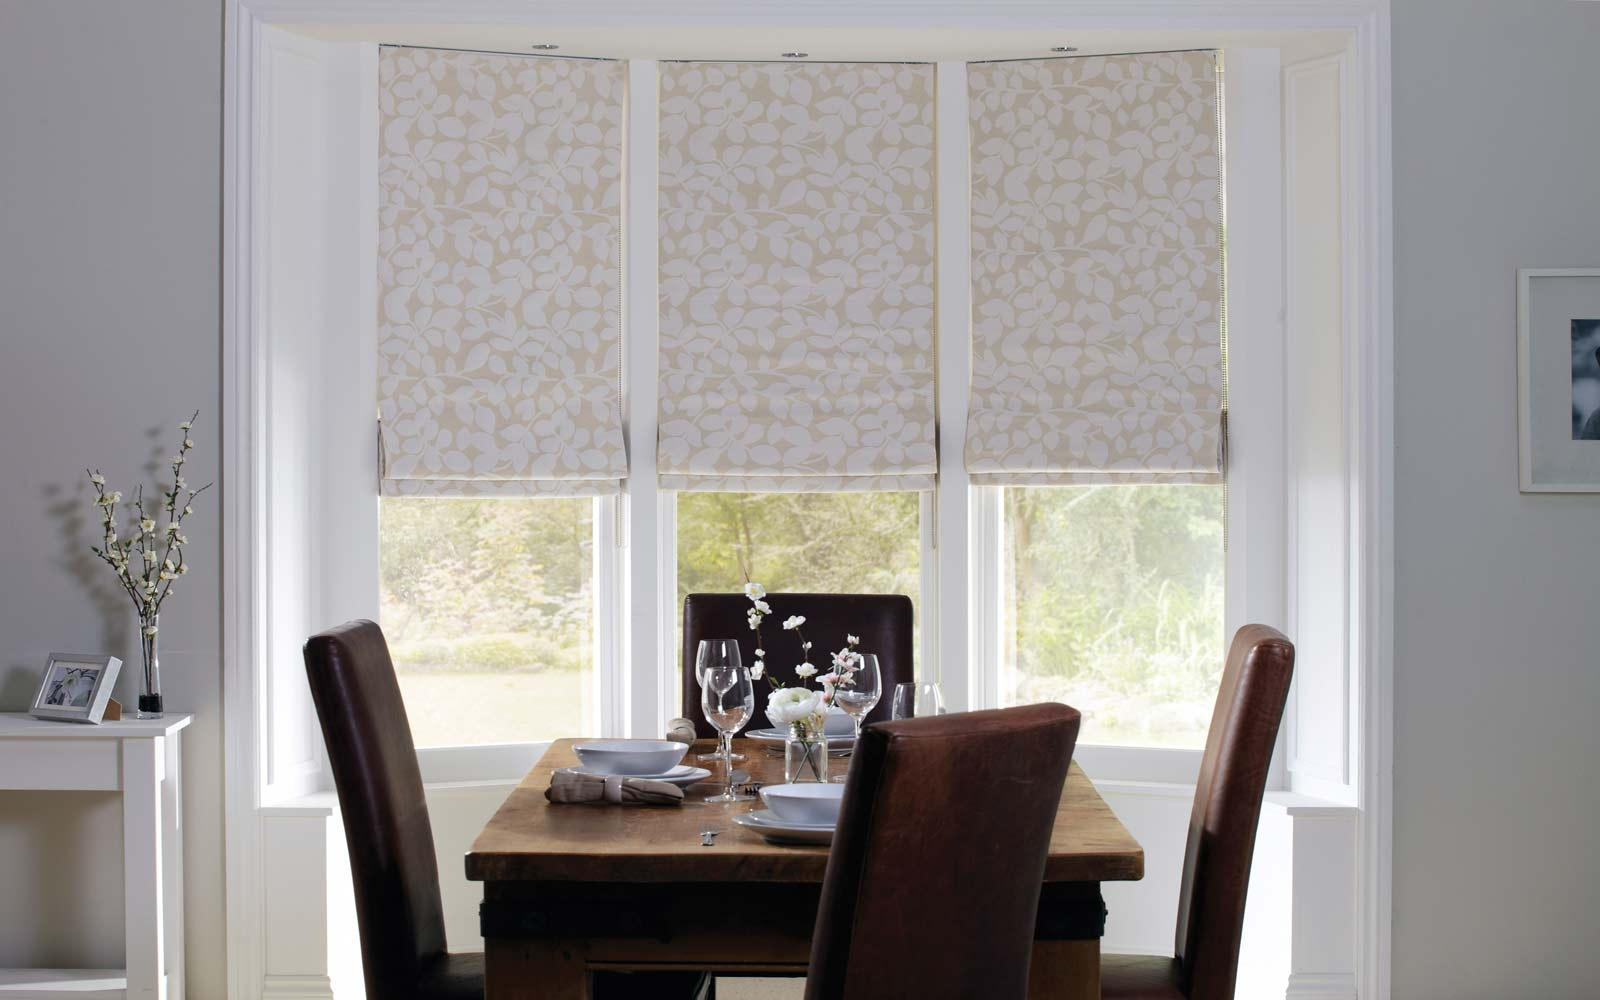 Roman Blinds Surrey Blinds Shutters Pertaining To Long Roman Blinds (View 11 of 15)